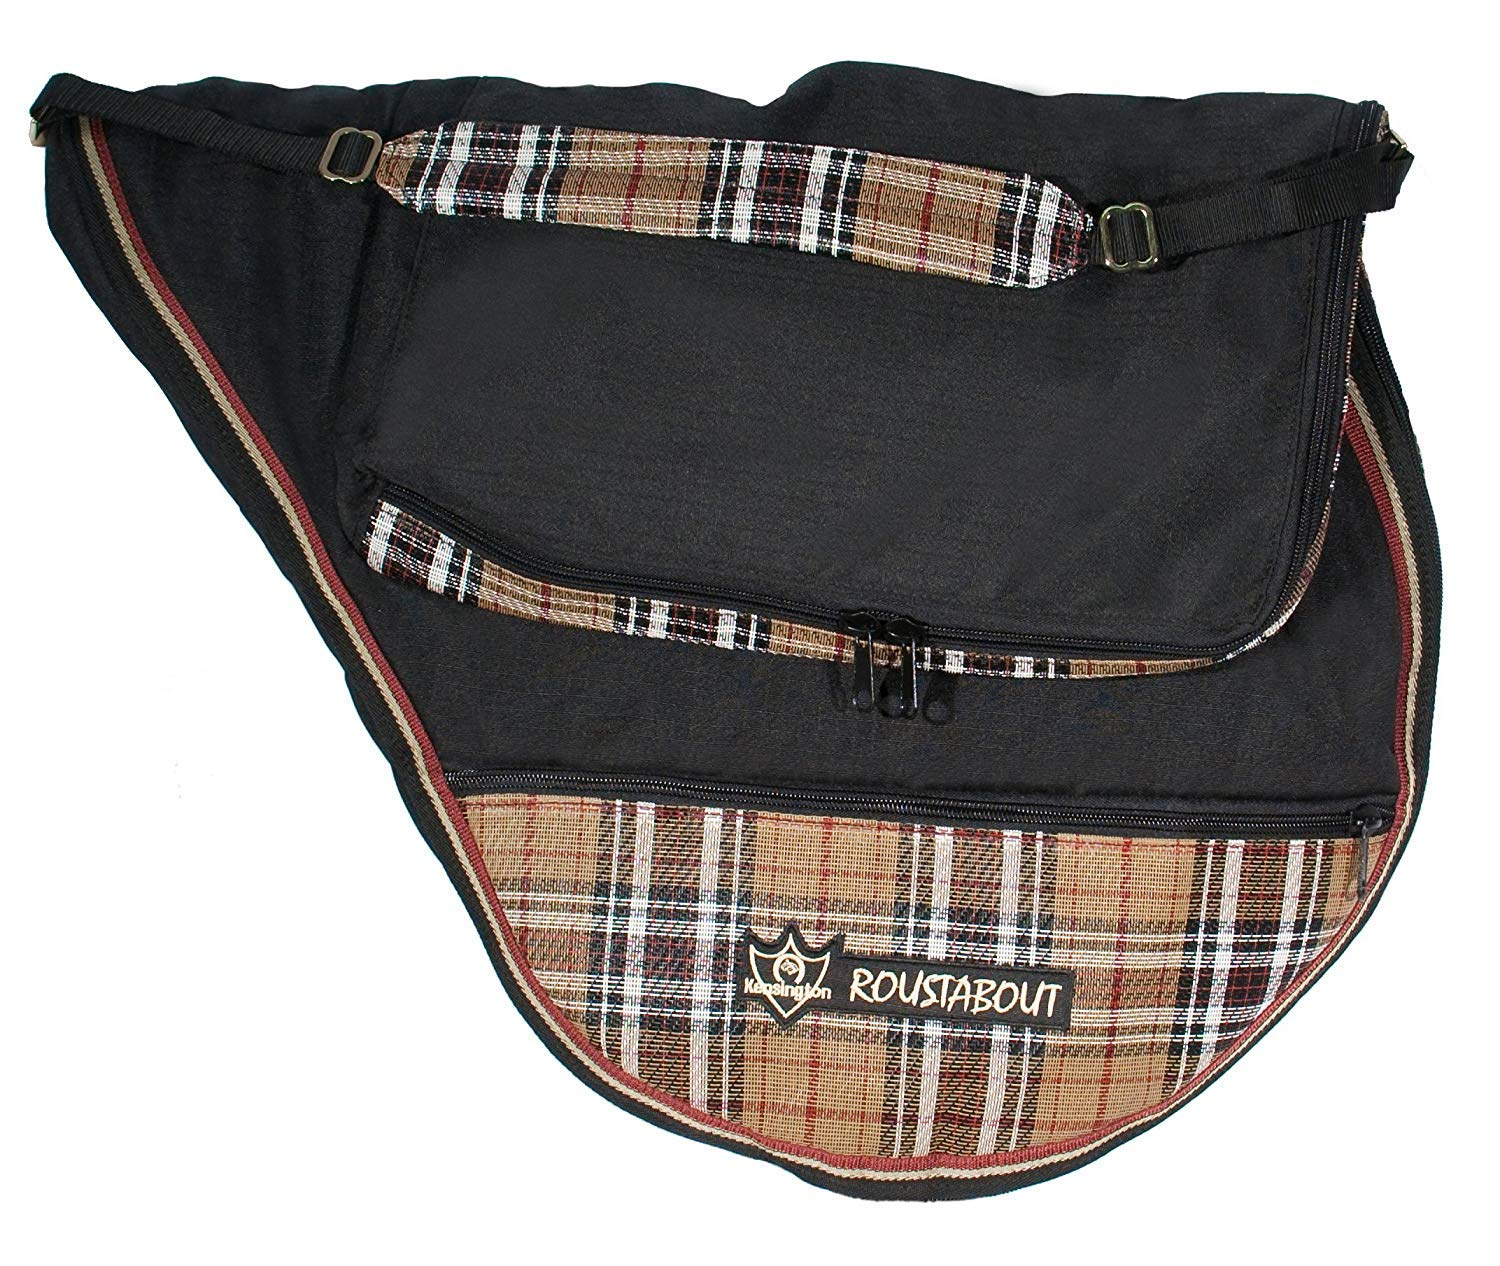 Kensington All Purpose Saddle Carrying Bag - Waterproof Outer Shell - Features Top Pad Storage Compartment - Padded Shoulder Pad for Carrying Comfort by Kensington Protective Products